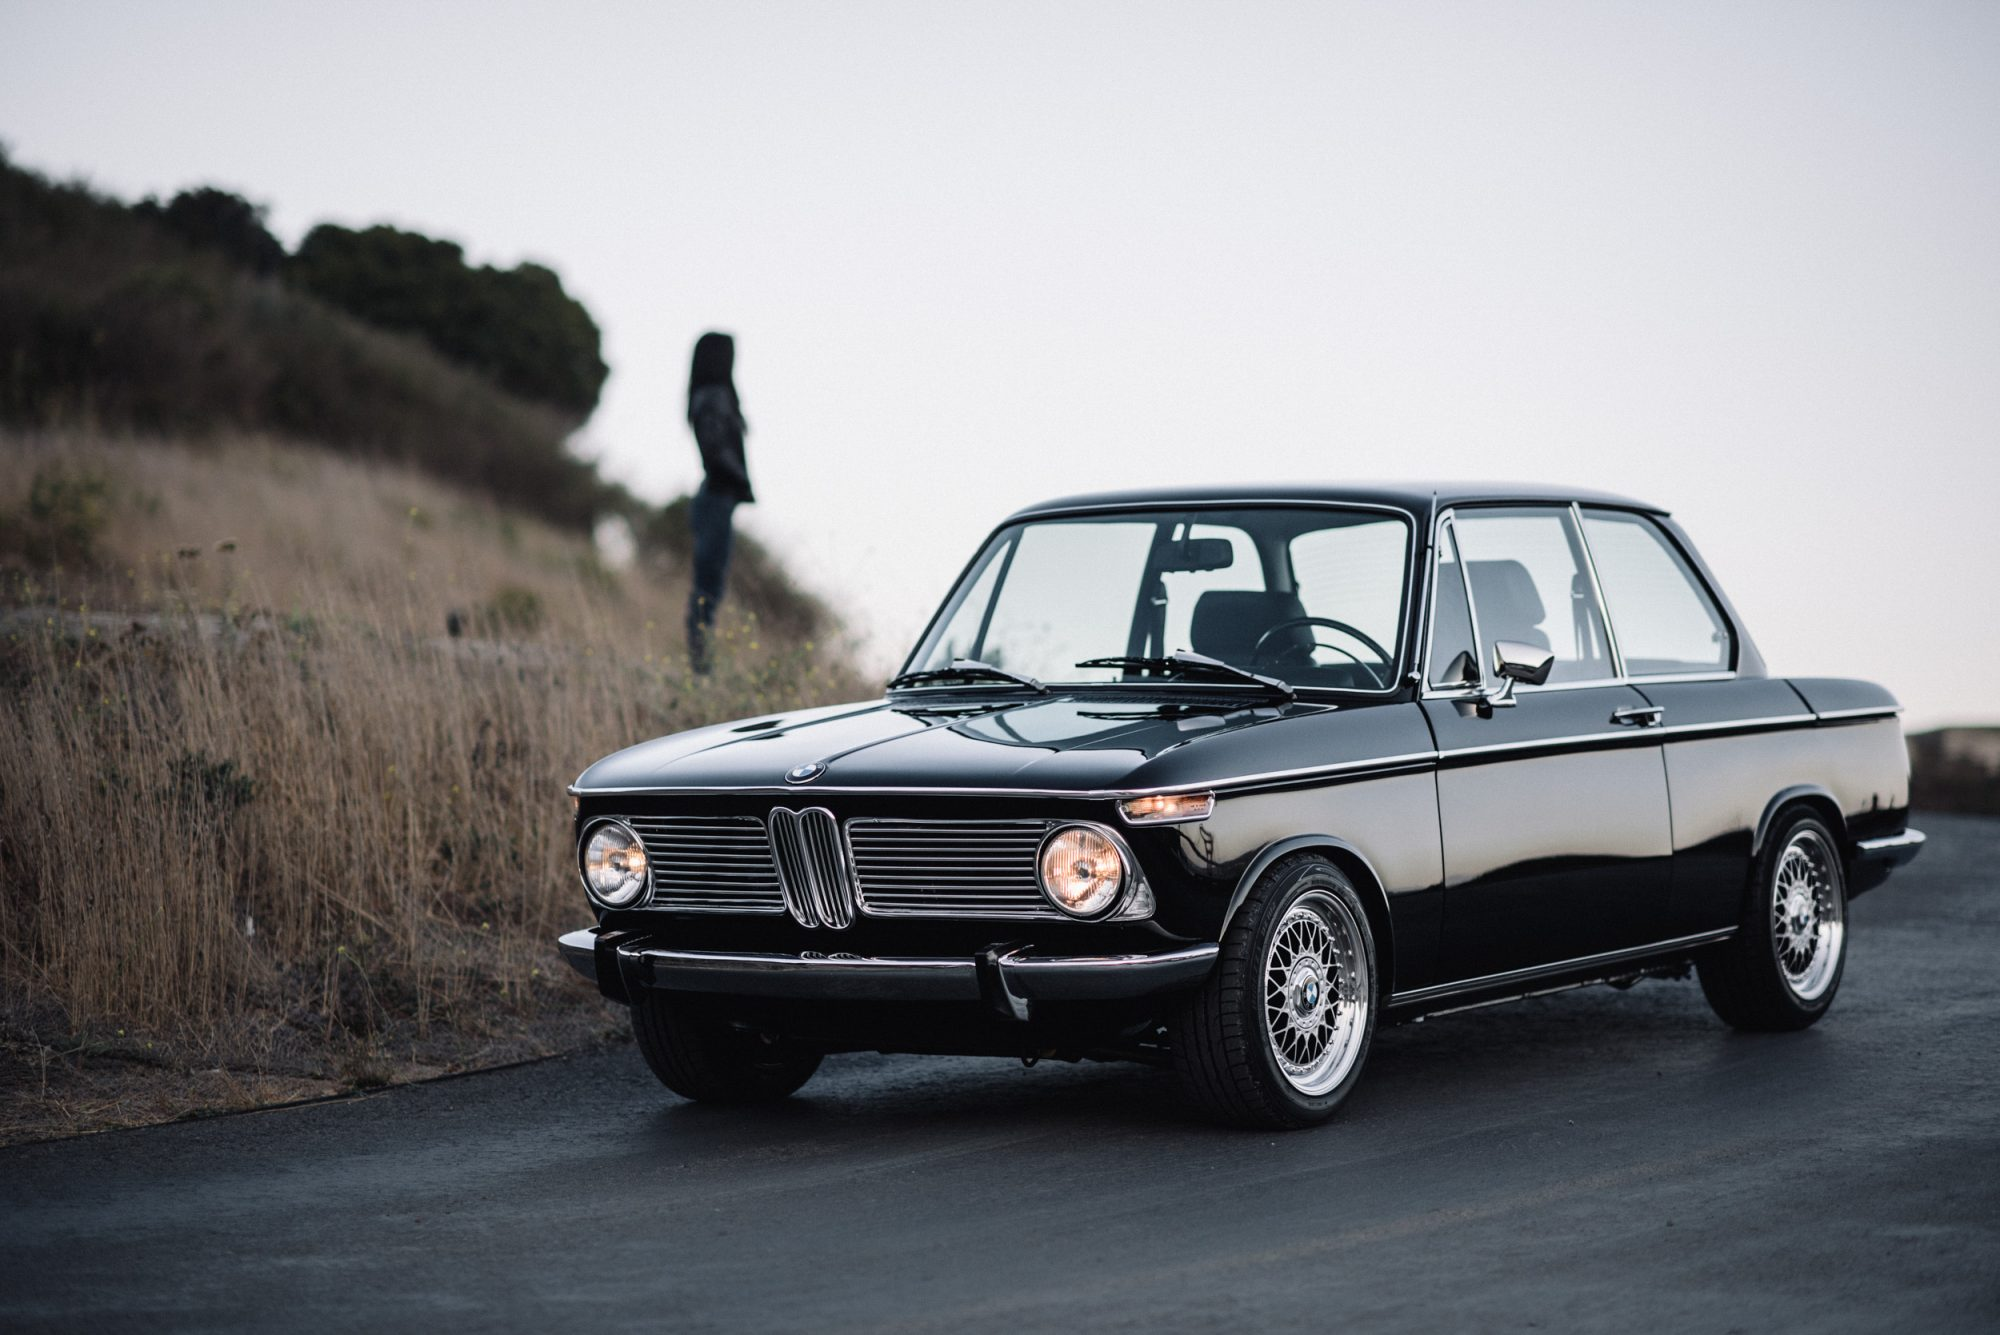 This Bmw 2002 Is The Culmination Of A 20 Year Love Affair